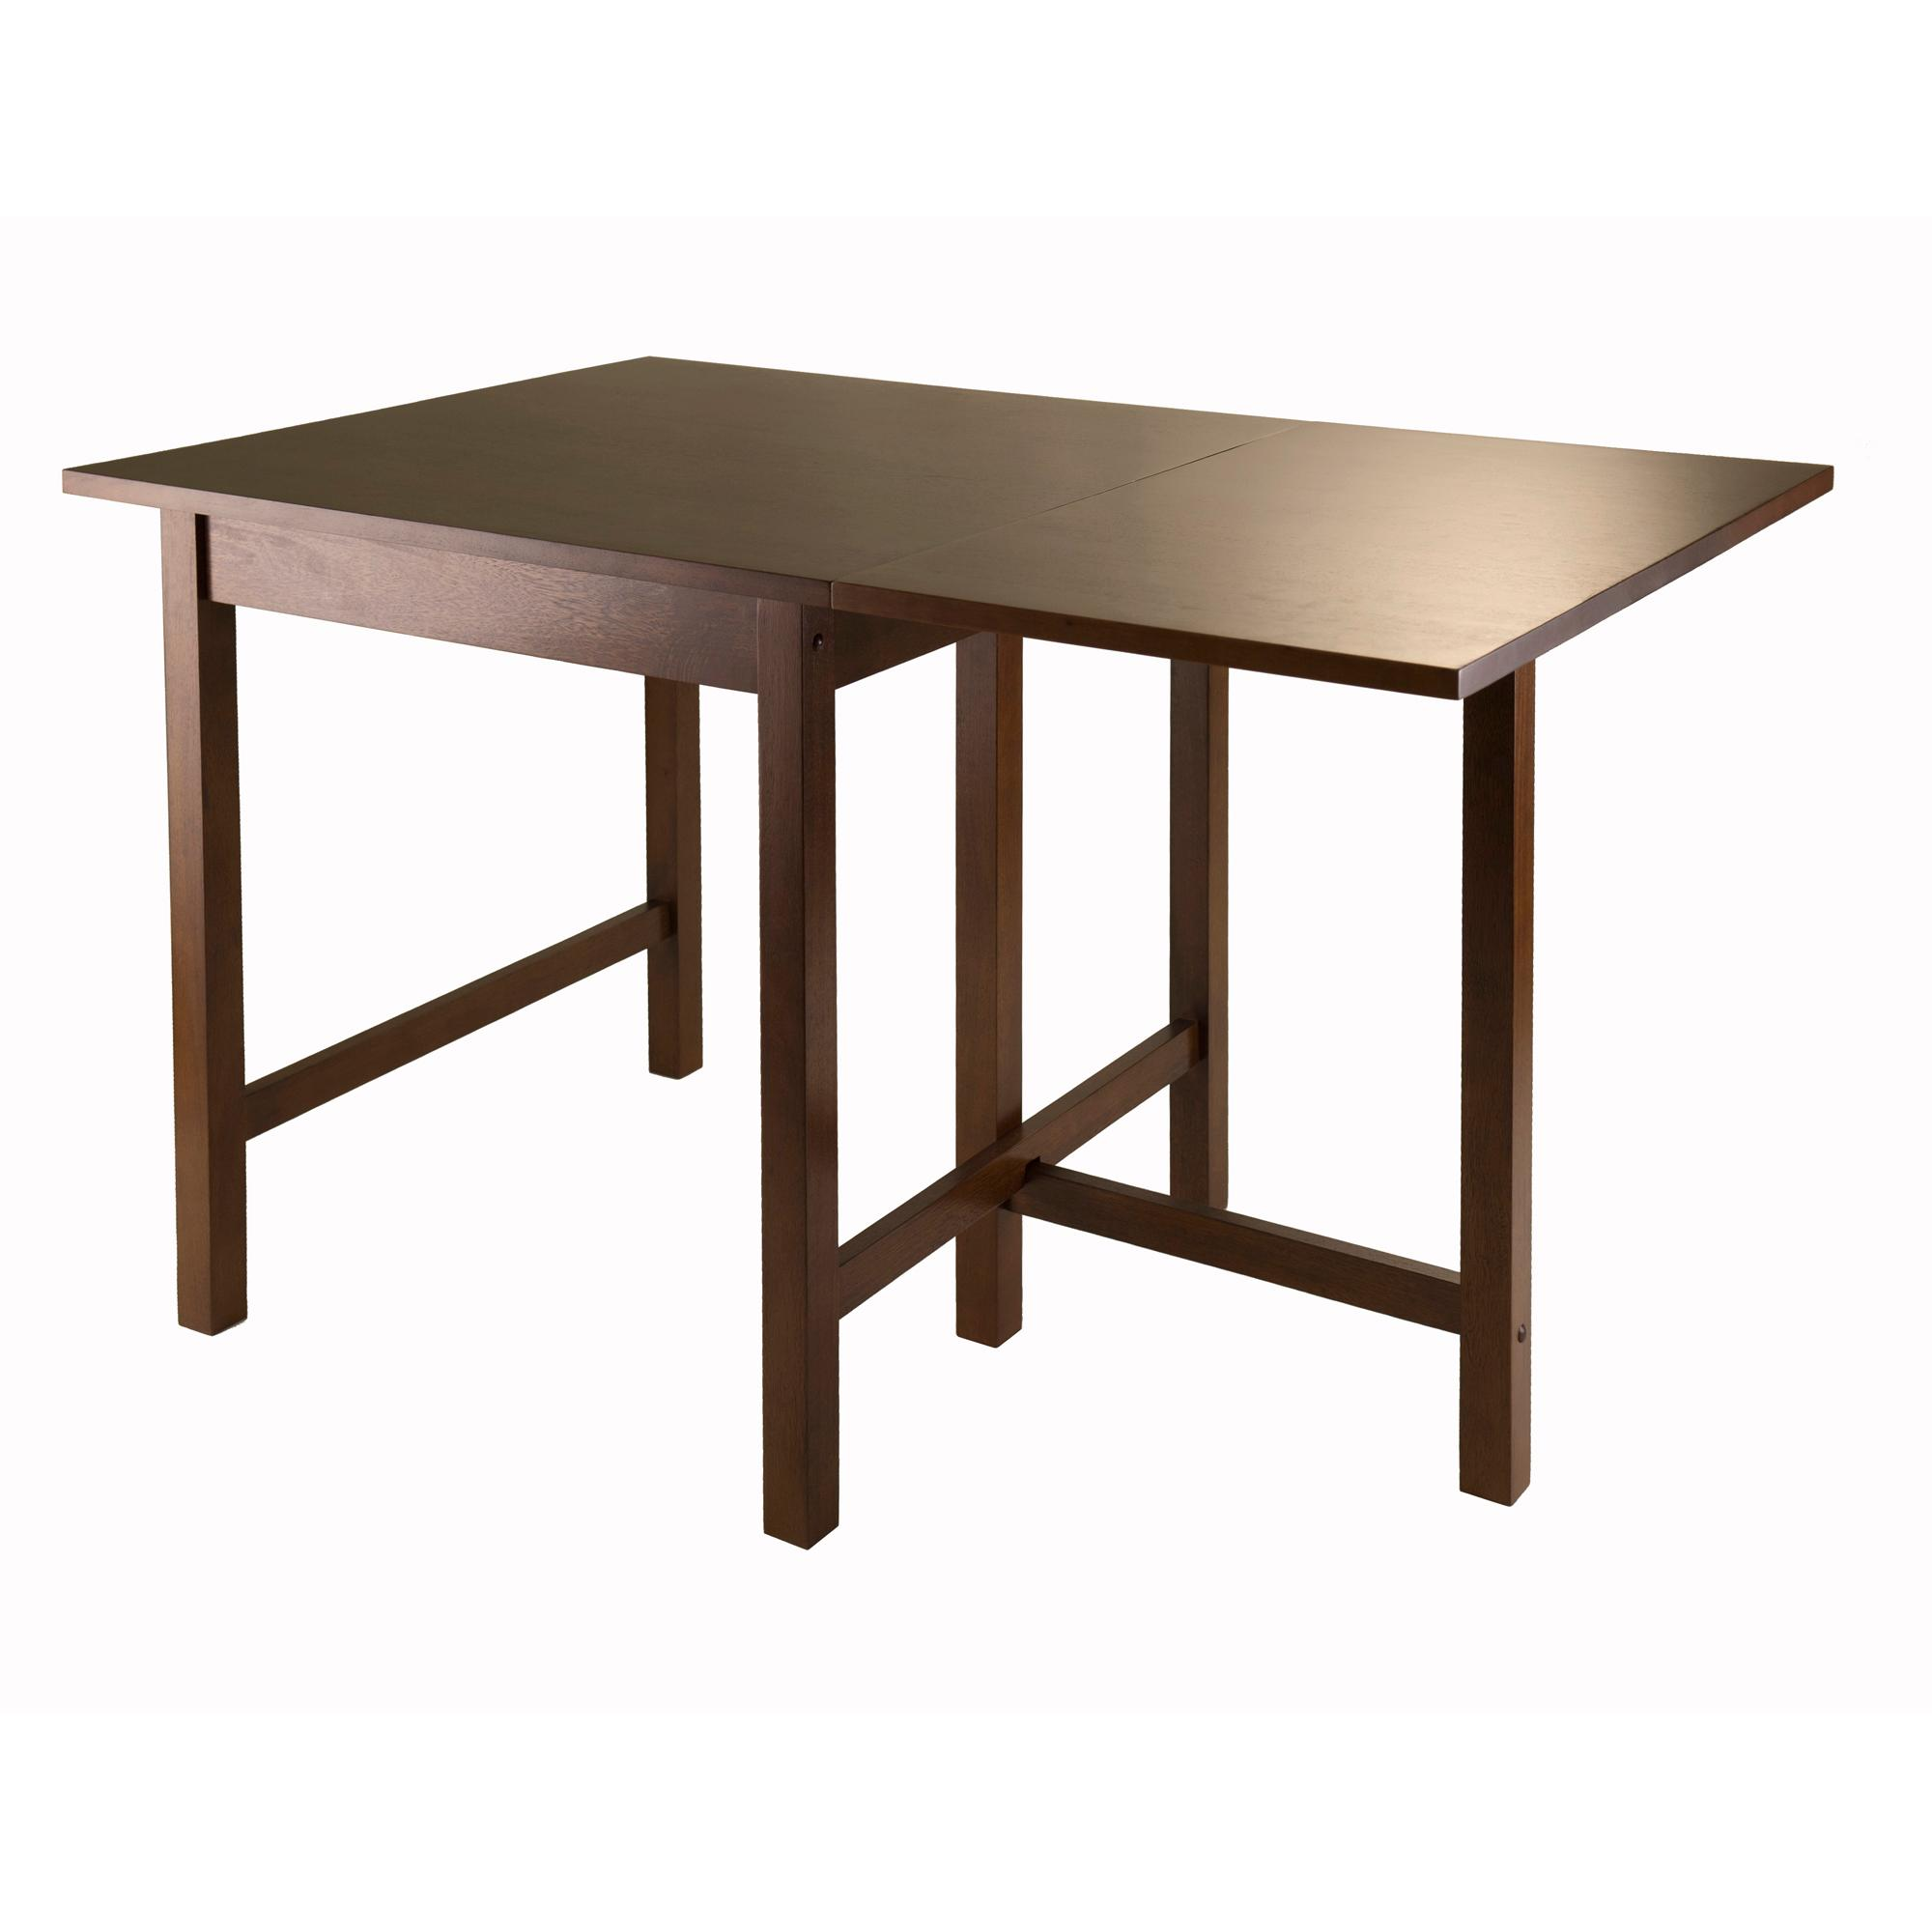 BHZIQ drop leaf kitchen table Lynden Drop Leaf Dining Table